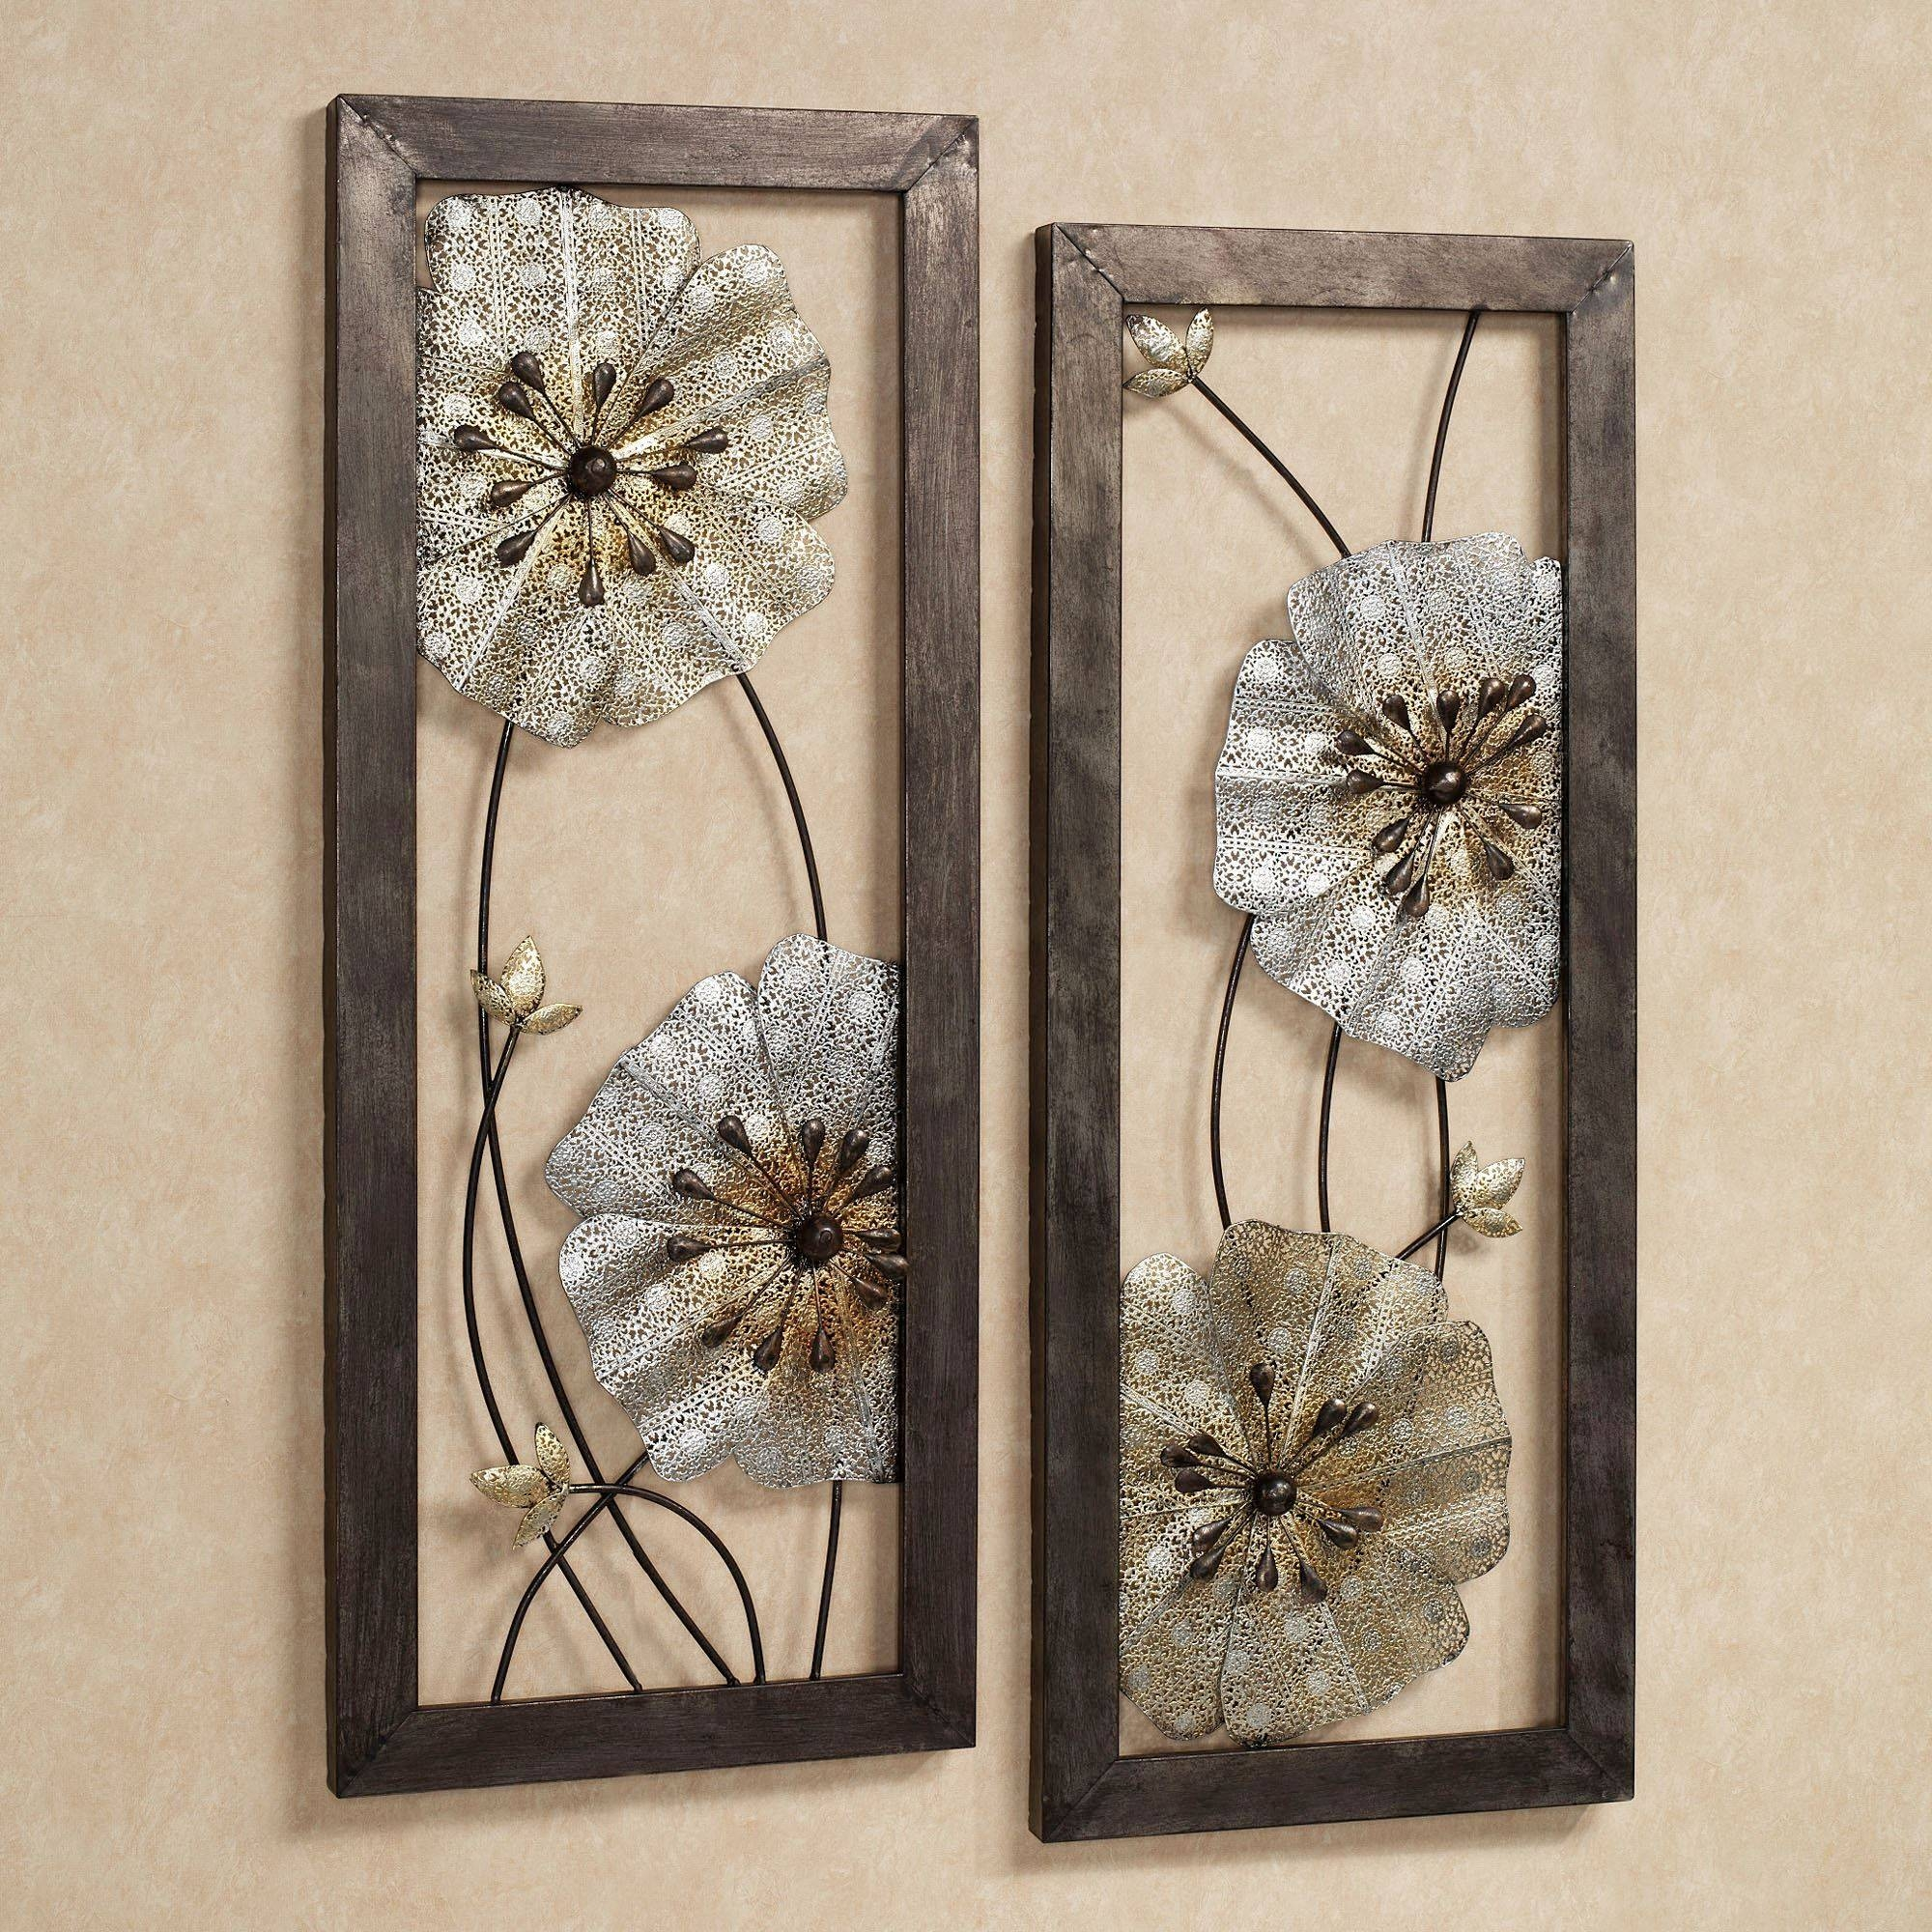 Malacia Openwork Floral Metal Wall Art Set Intended For Best And Newest Floral Metal Wall Art (View 3 of 20)